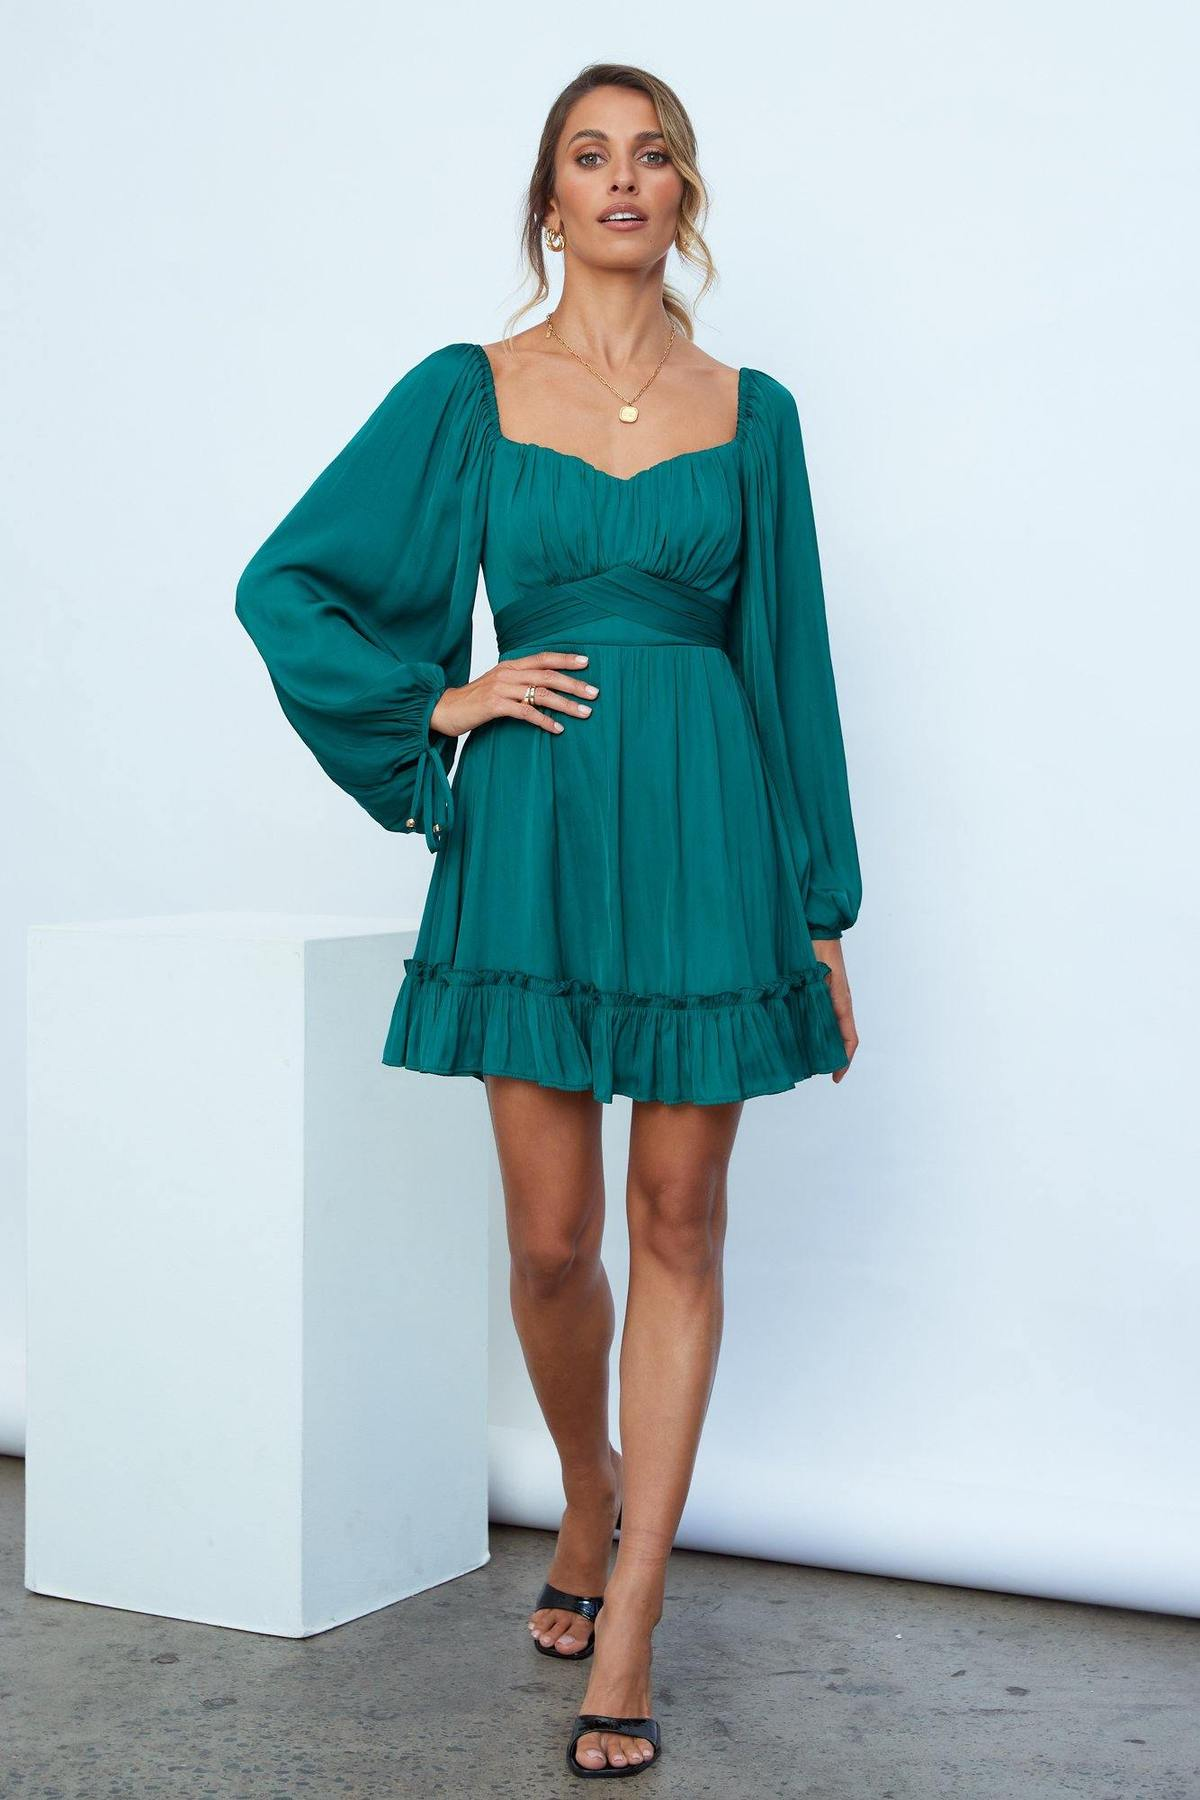 What To Wear To A Celebration Of Life: Emerald green dress